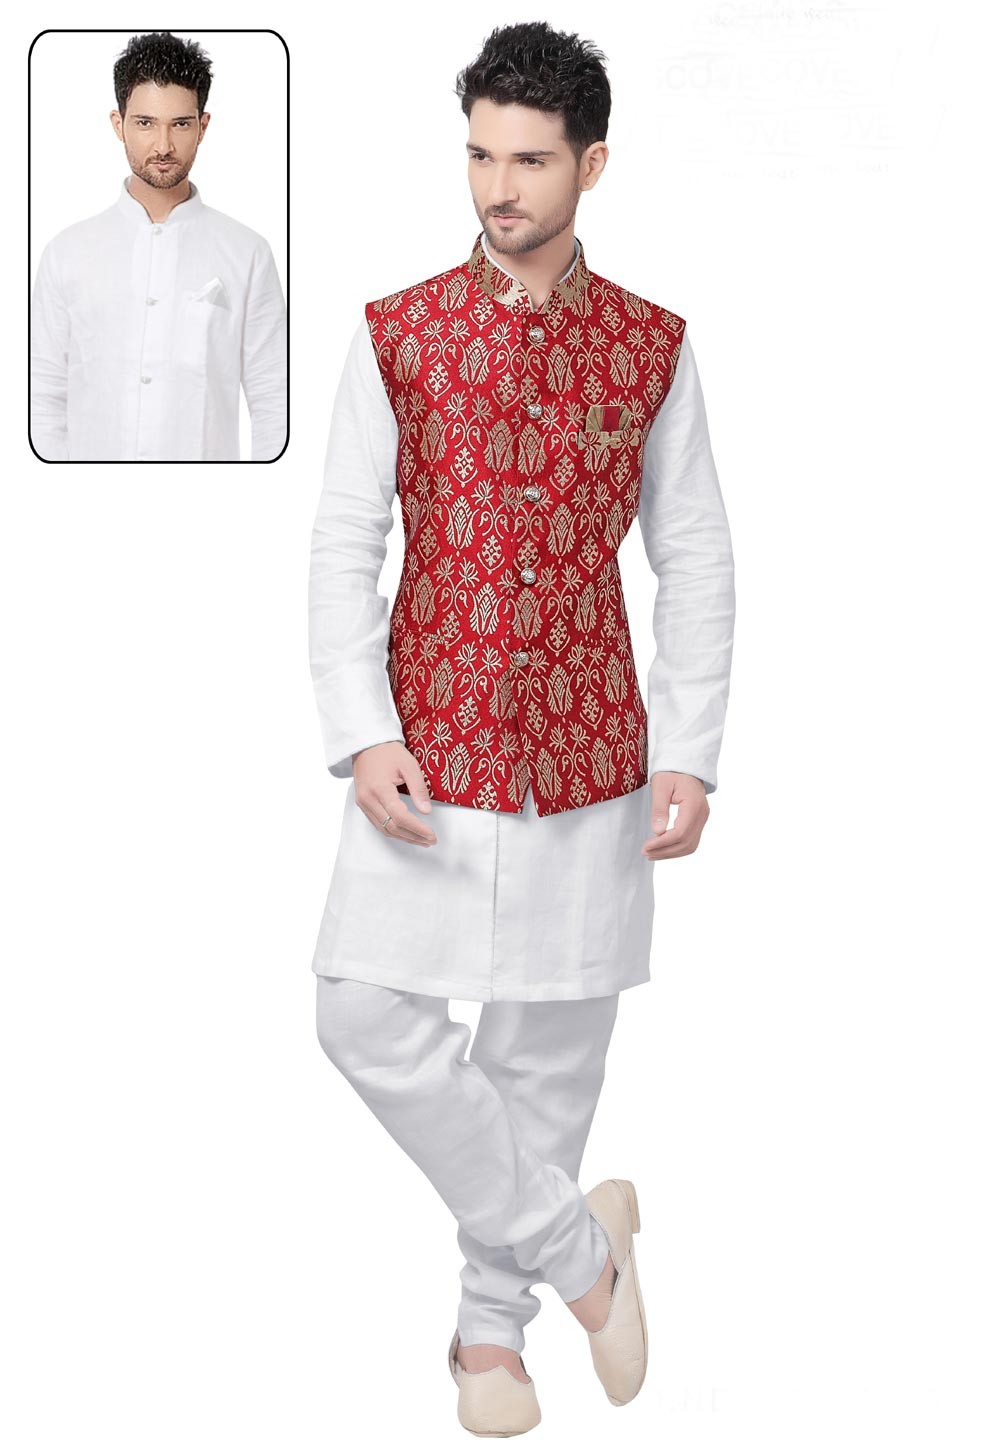 Men's Exquisite White,Maroon Color Readymade Kurta Pajama With Jacket